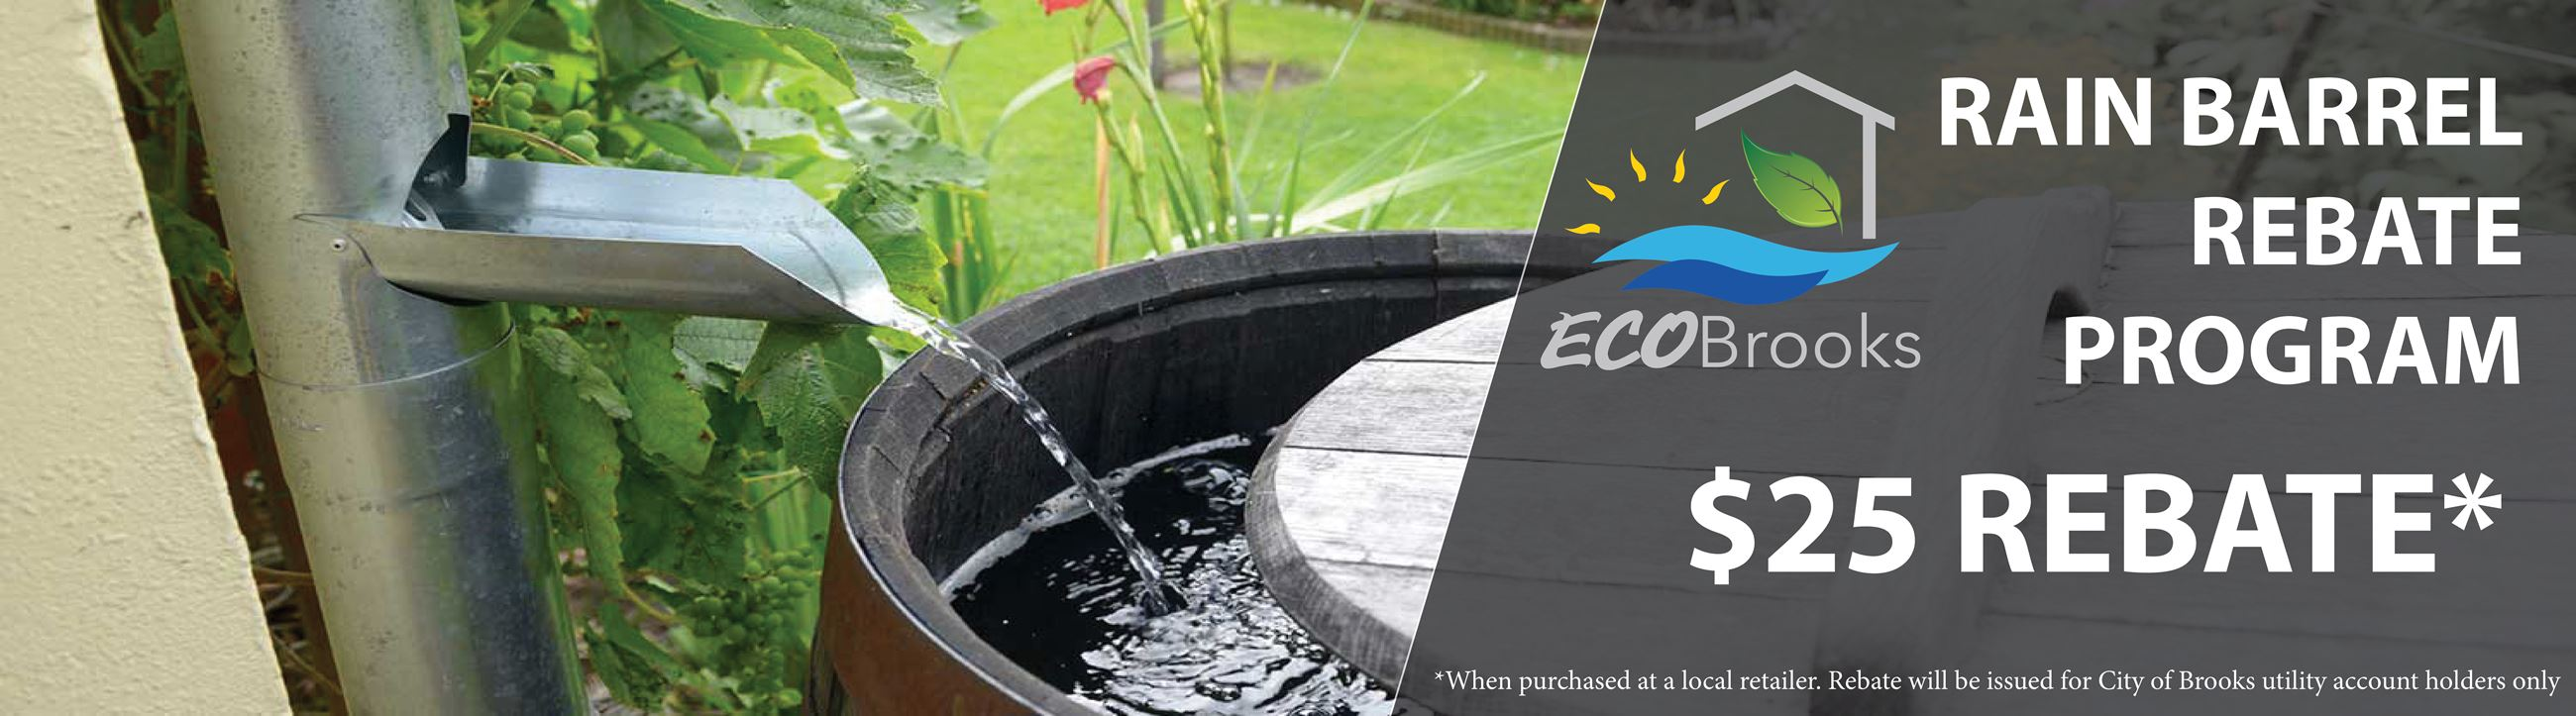 Rain barrel rebate